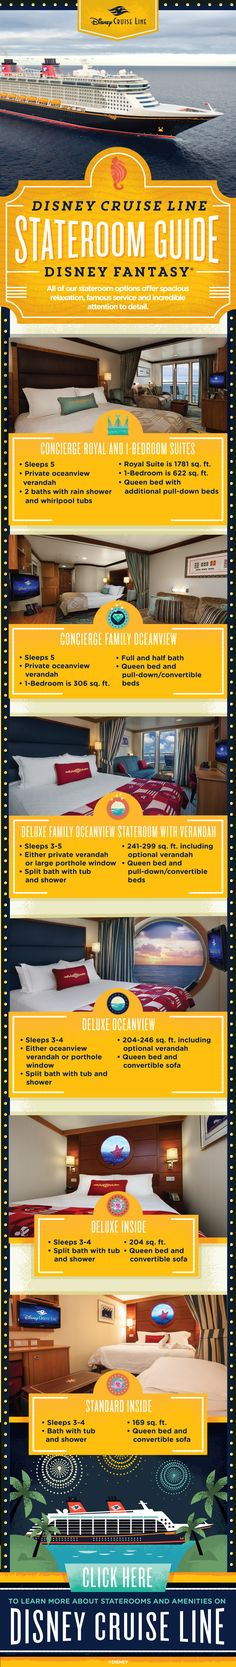 All Disney Cruise Line stateroom options offer spacious relaxation, famous Guest service and incredible attention to detail. Contact me at joy.hiett@simplyenchanted.info to see which stateroom is best for your family onboard the Disney Fantasy!